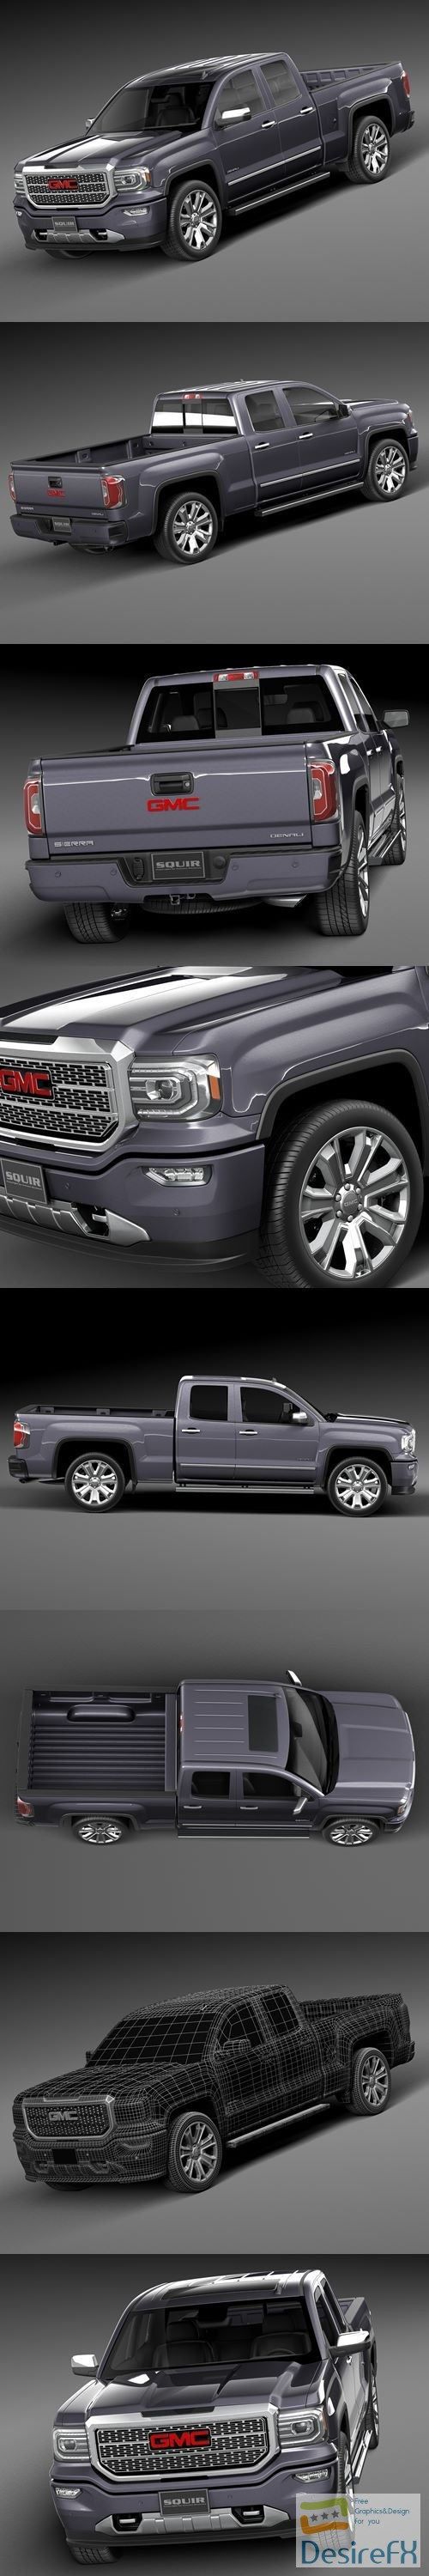 3d-models - GMC Sierra Denali 2016 3D Model